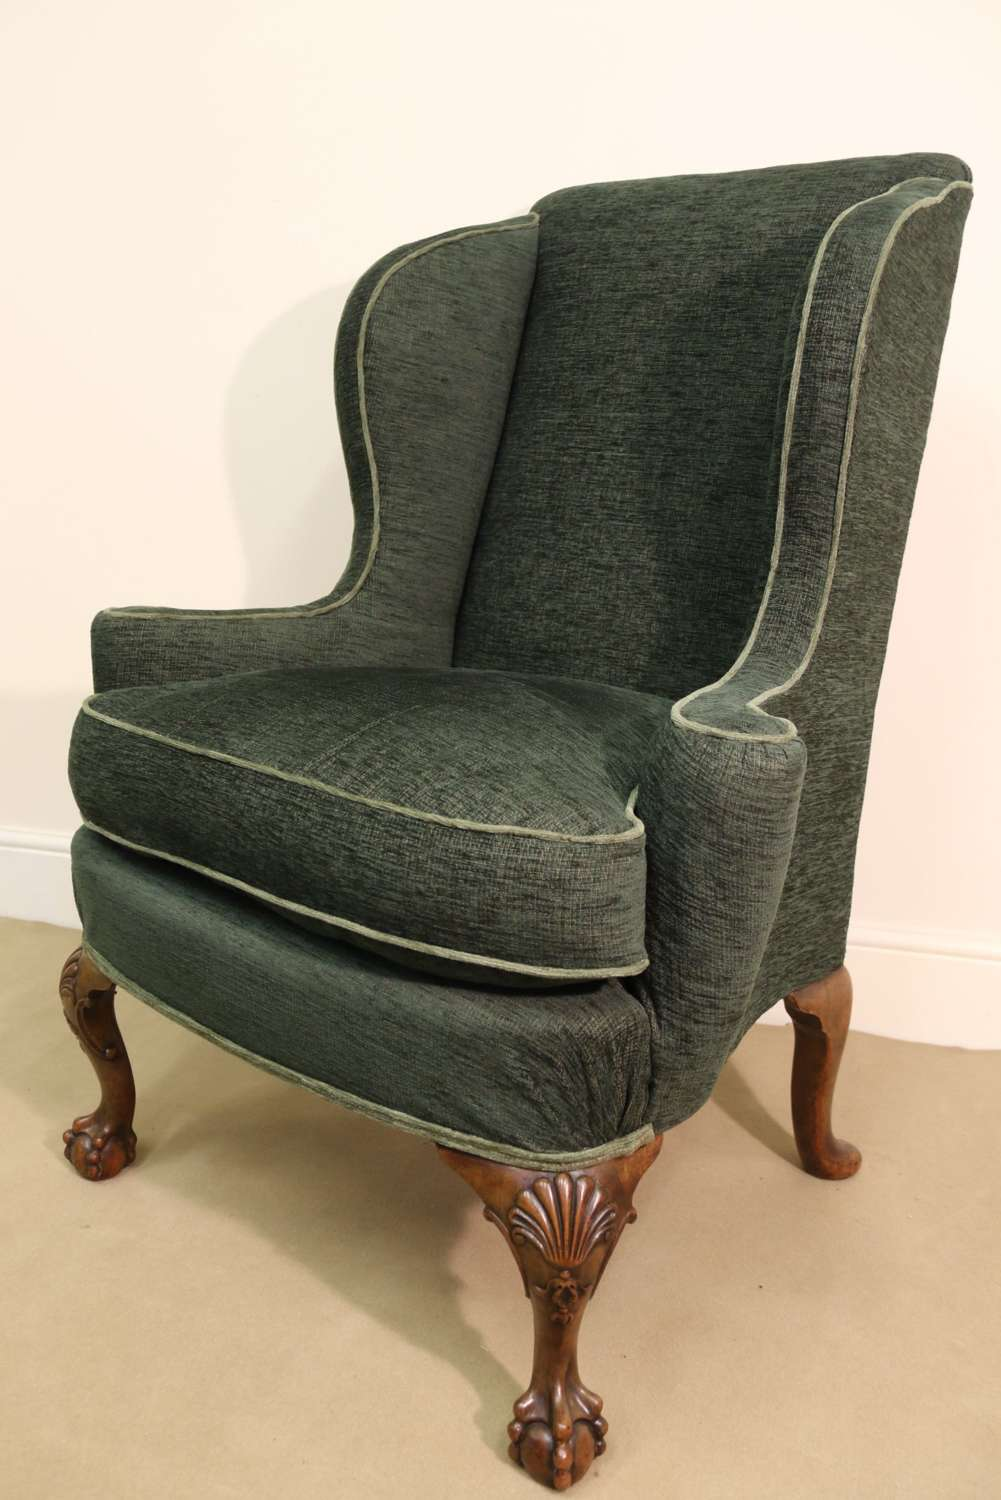 A Superb George I Style Winged Arm Chair